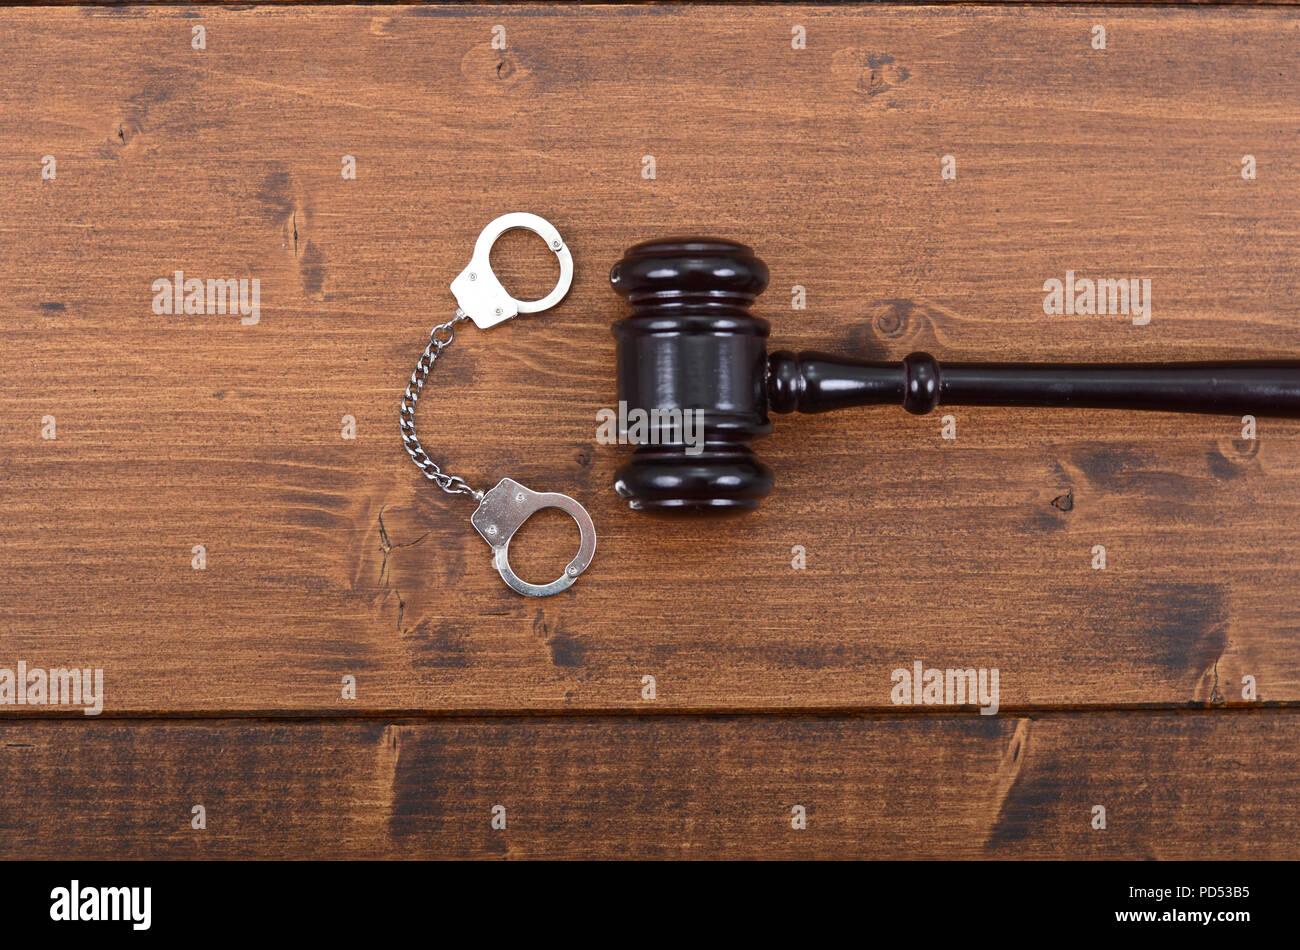 Law and Justice, Legality concept, Judge Gavel and Handcuffs on a black wooden background. - Stock Image